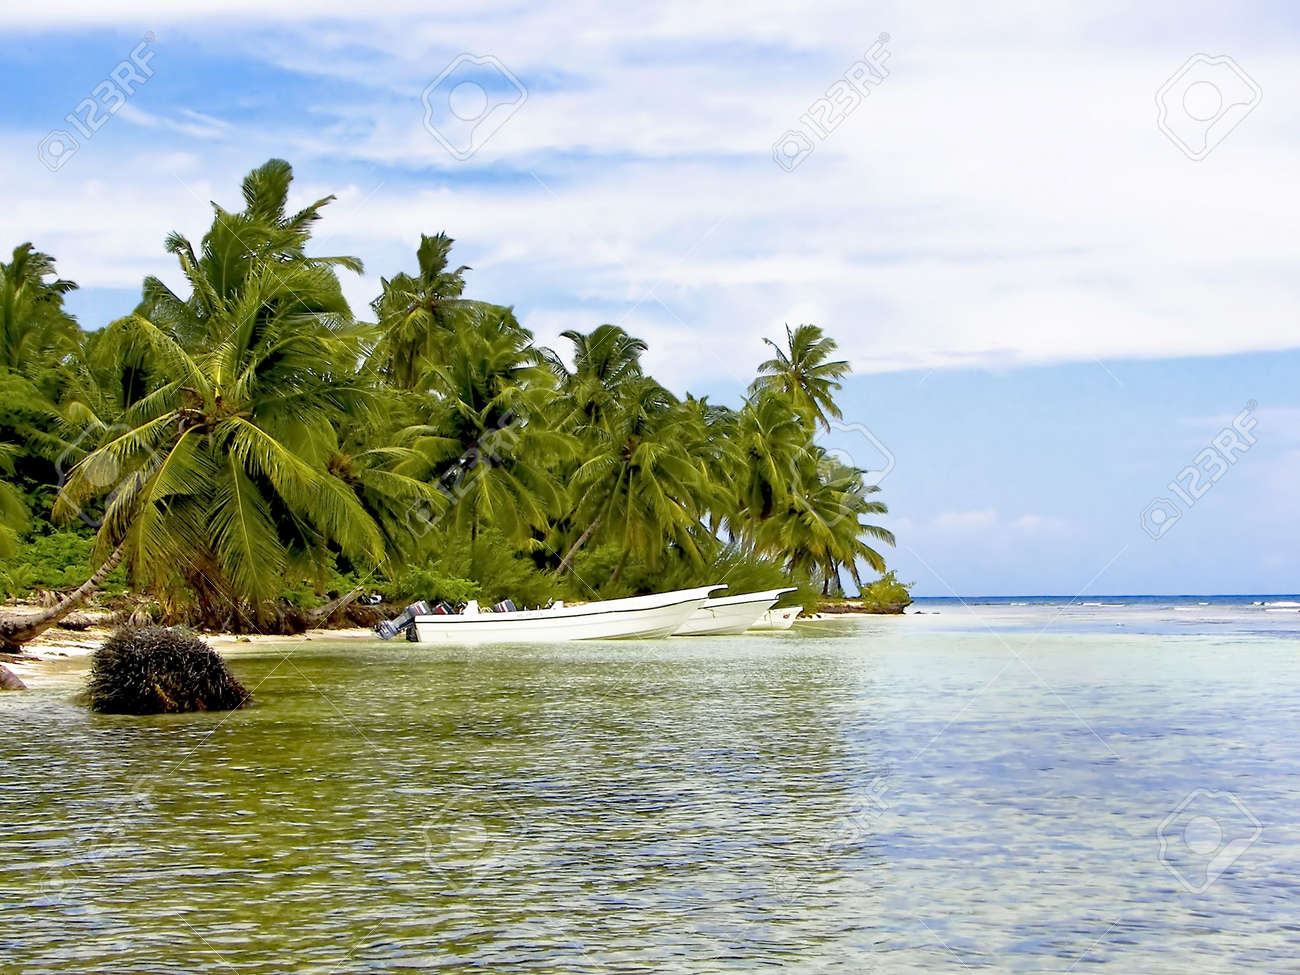 Tropical cove surrounded with palm trees.  Beautiful clear water with boats parked by shoreline. Stock Photo - 3086549